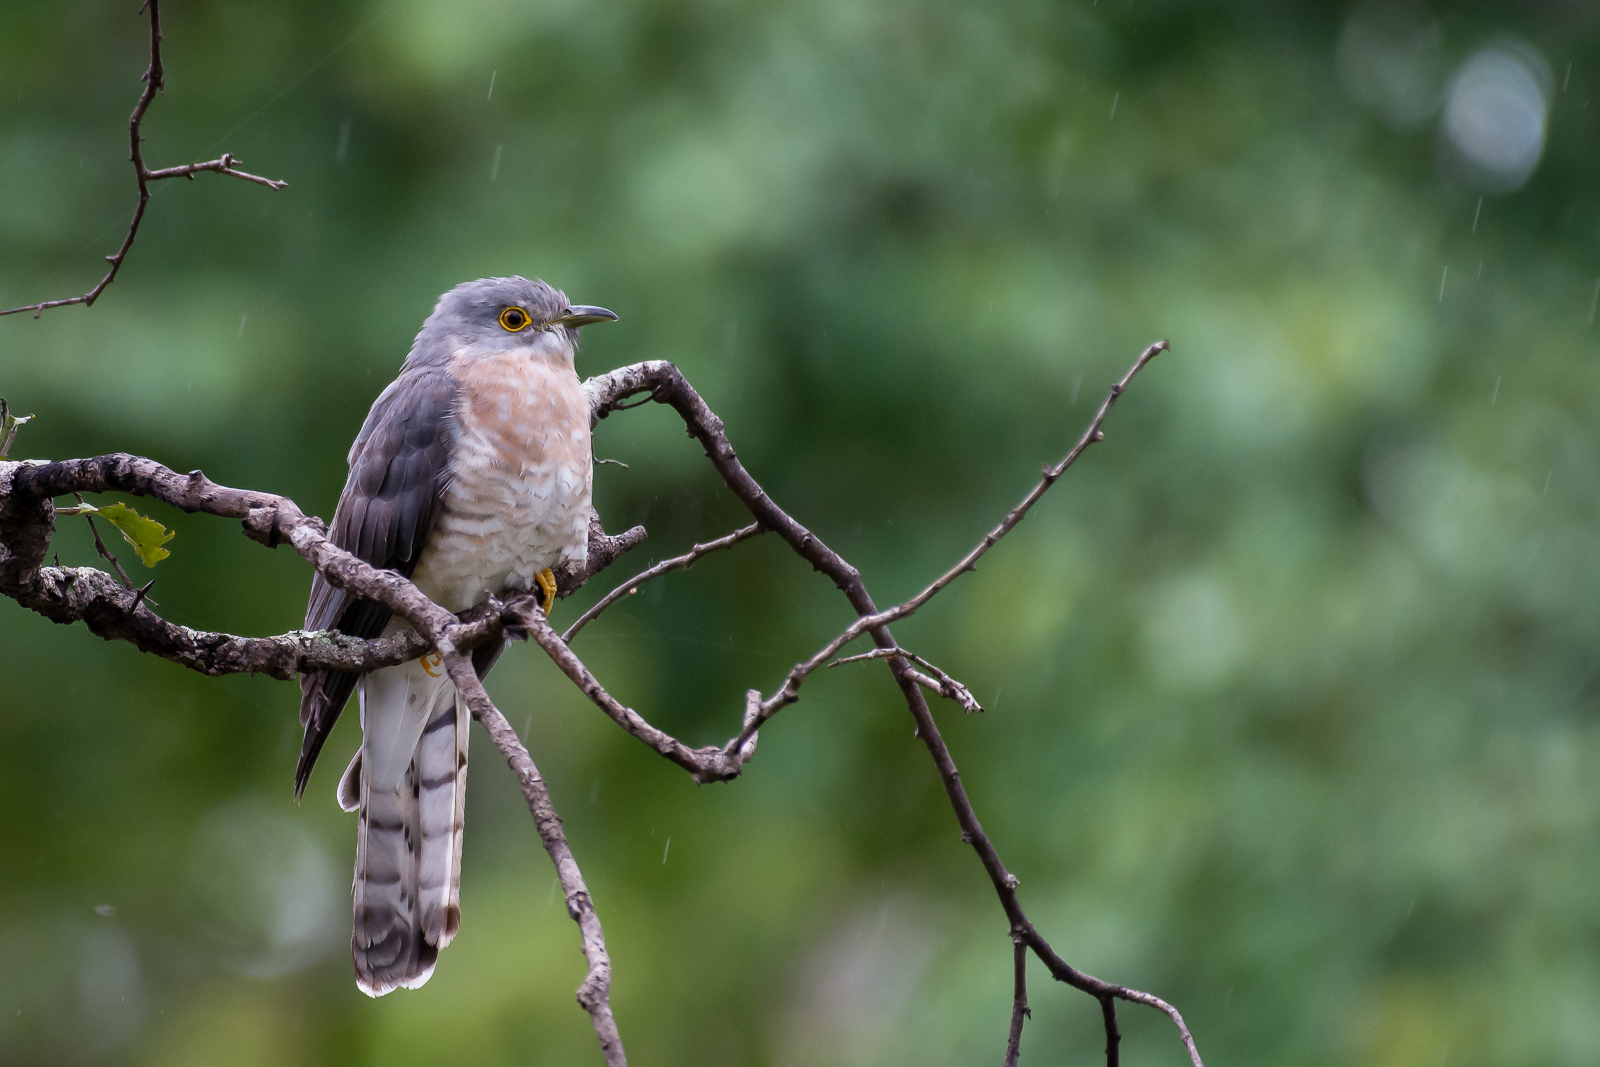 Image: Hawk cuckoo bird in the rain. Low light image and photographed from a safari vehicle.